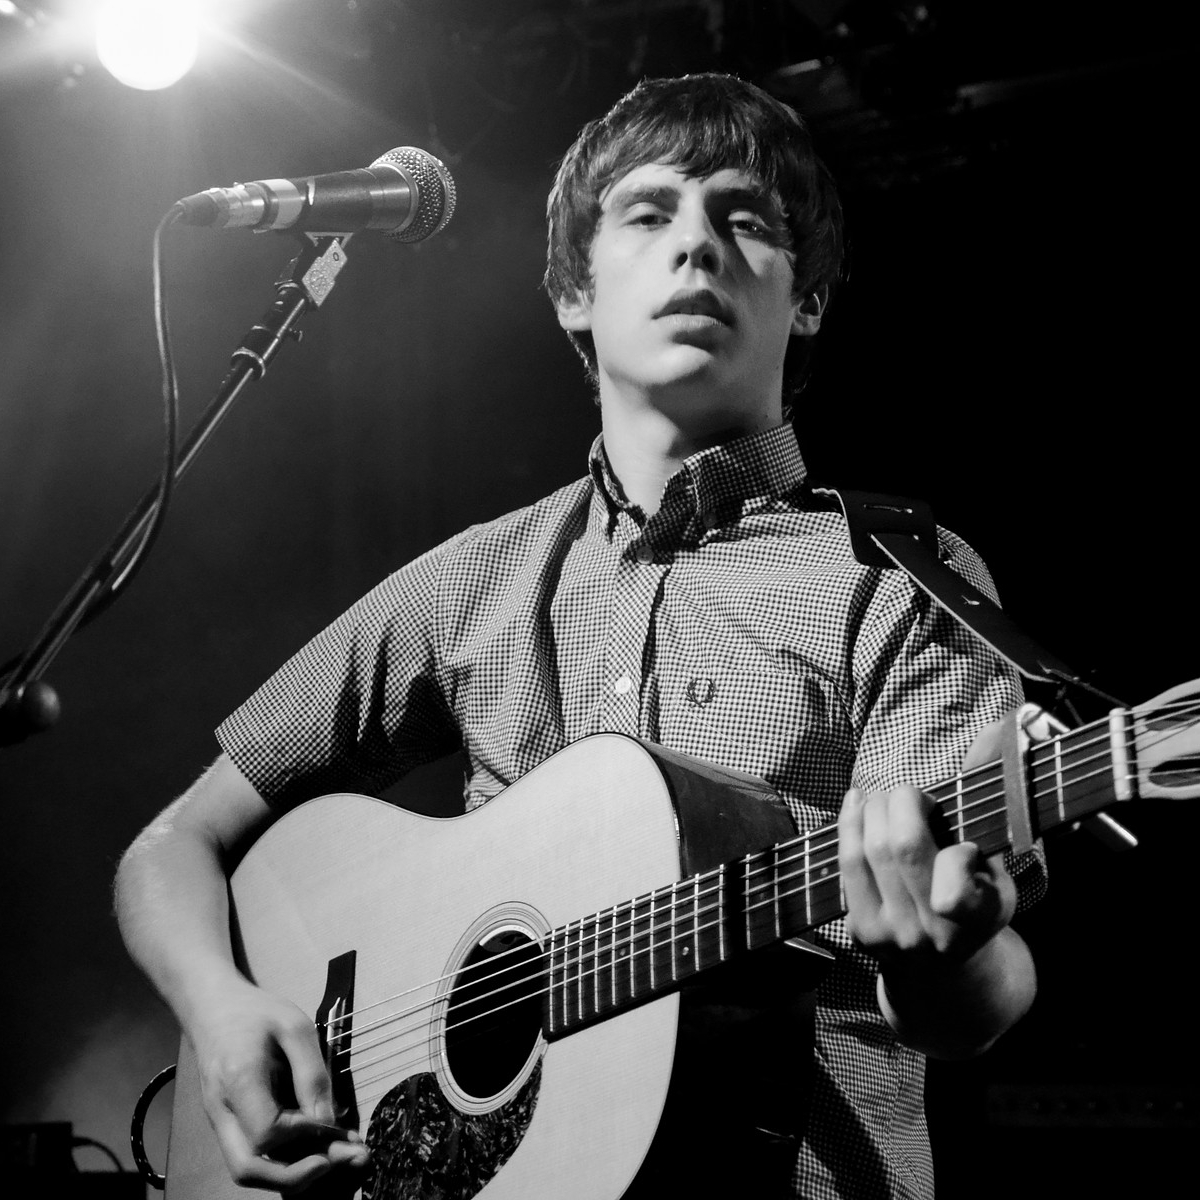 Jake Bugg Wearing a Gingham Check Fred Perry Shirt